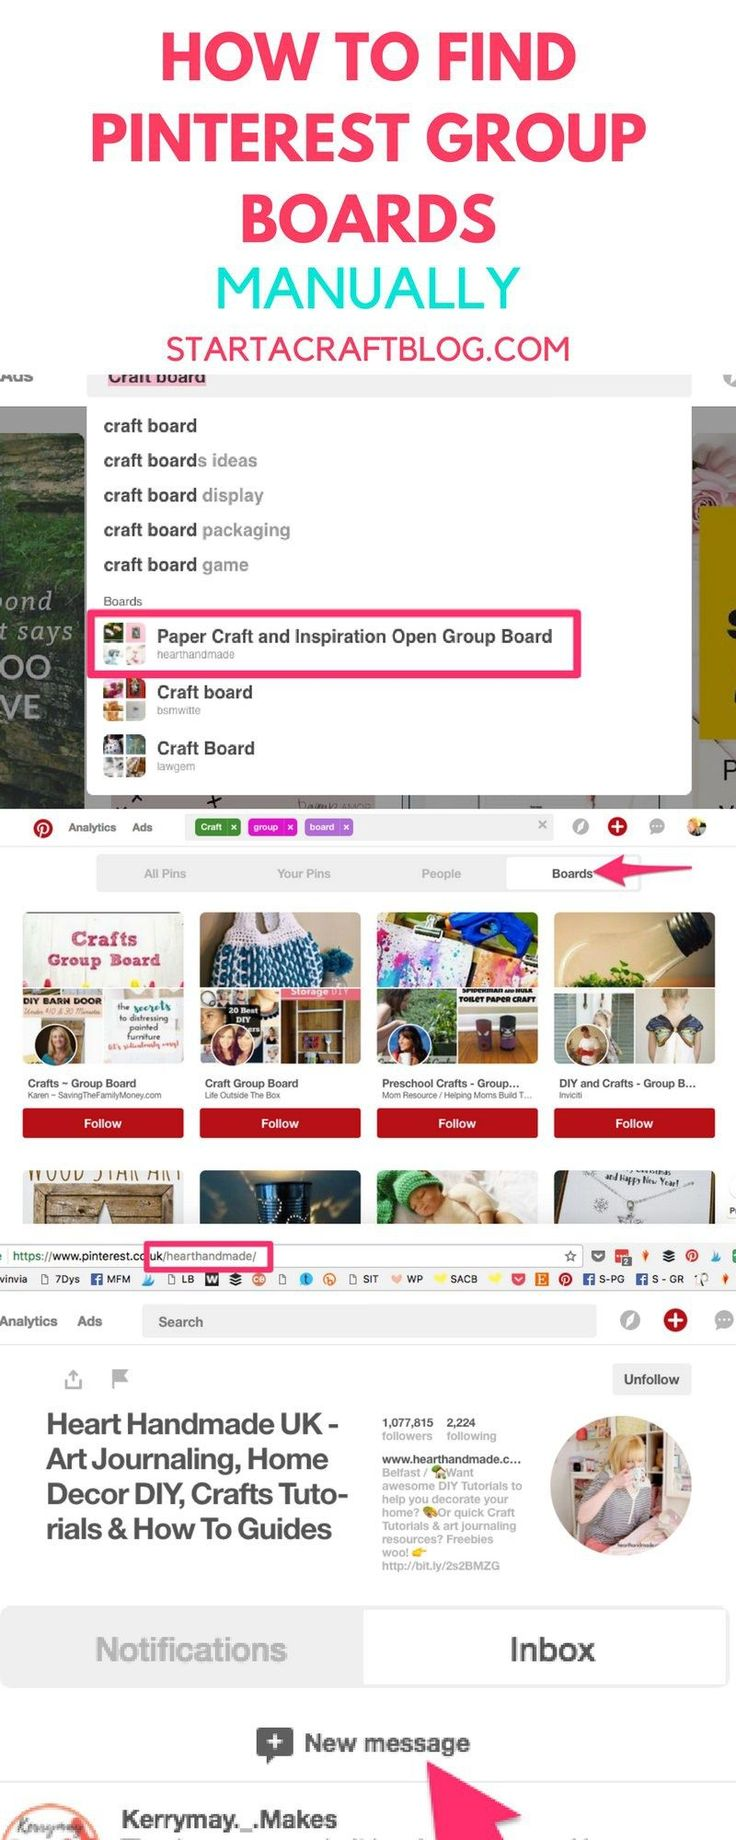 Learn how to find and join Pinterest Group Boards via Board Booster. Be sure to check out these blogging tips to help you get even more blog traffic by using Pinterest Group Boards! You can find a large list of Group boards to join here too.